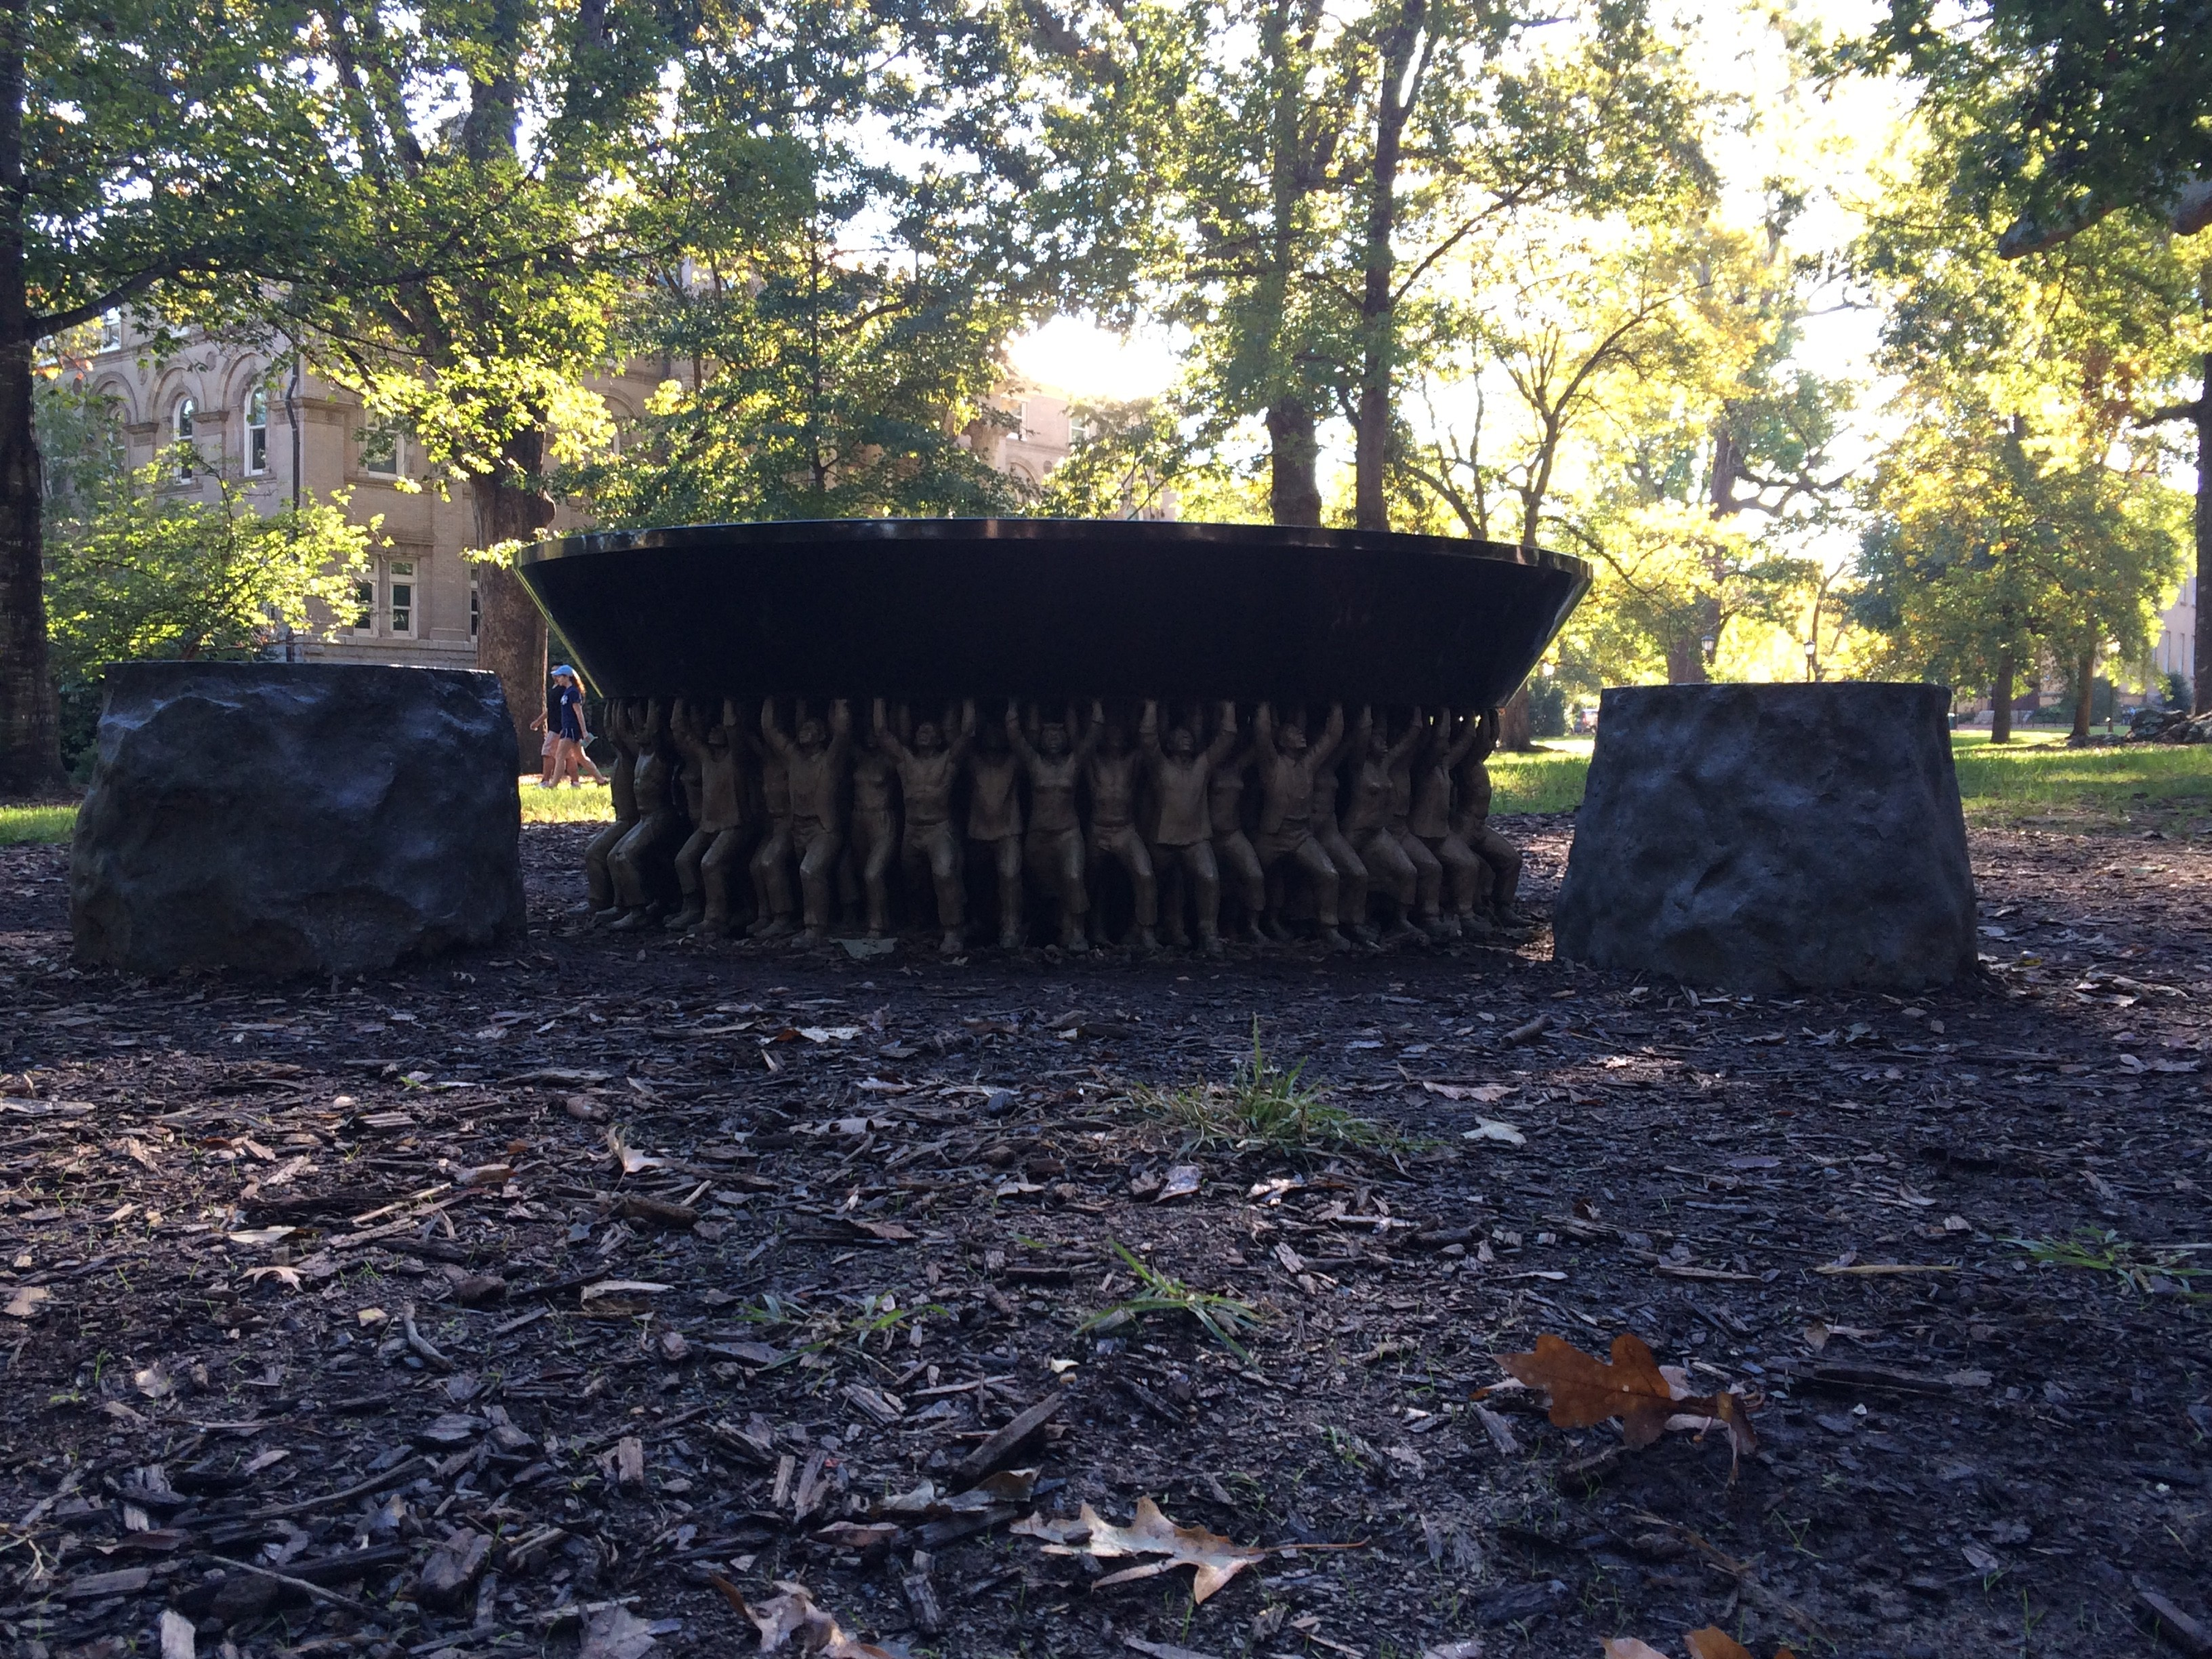 UNC Police: 'Permanent Marker and Urine' Used to Deface Unsung Founders Memorial